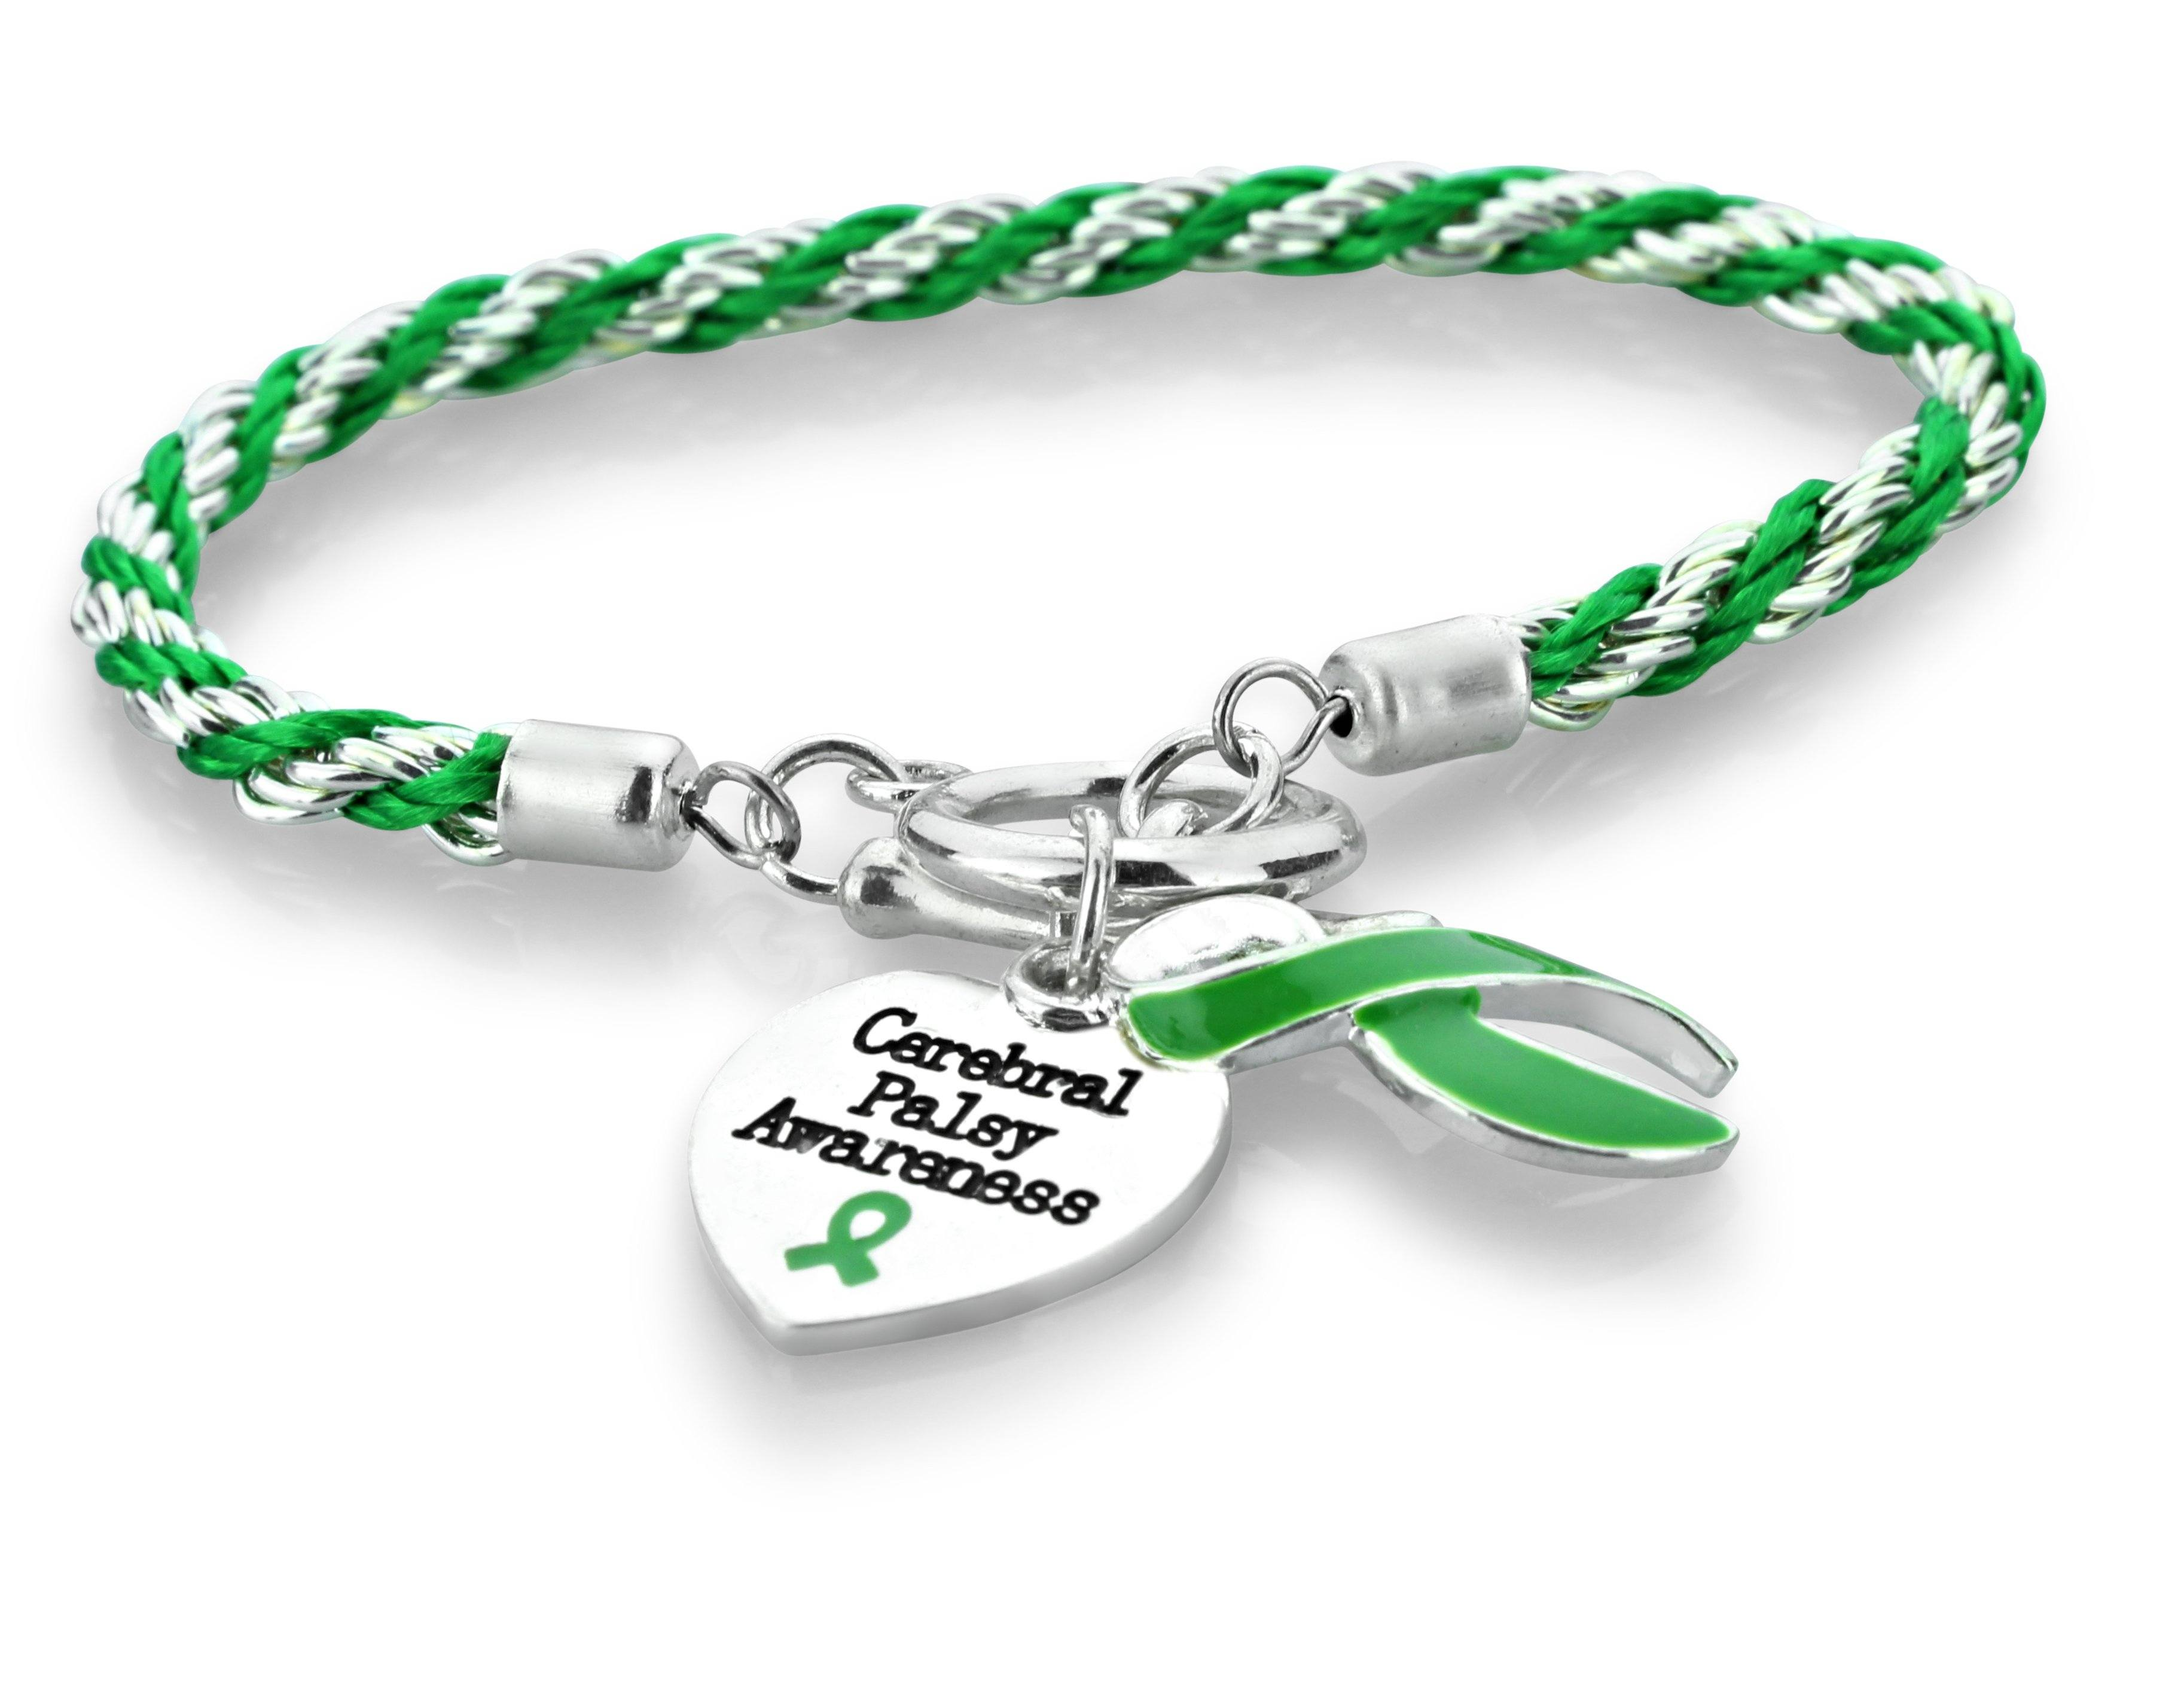 bracelet sink pick refuse fight ribbon invisible spoonie a leukemia cancer pin awareness to your lyme survivor girl illness like